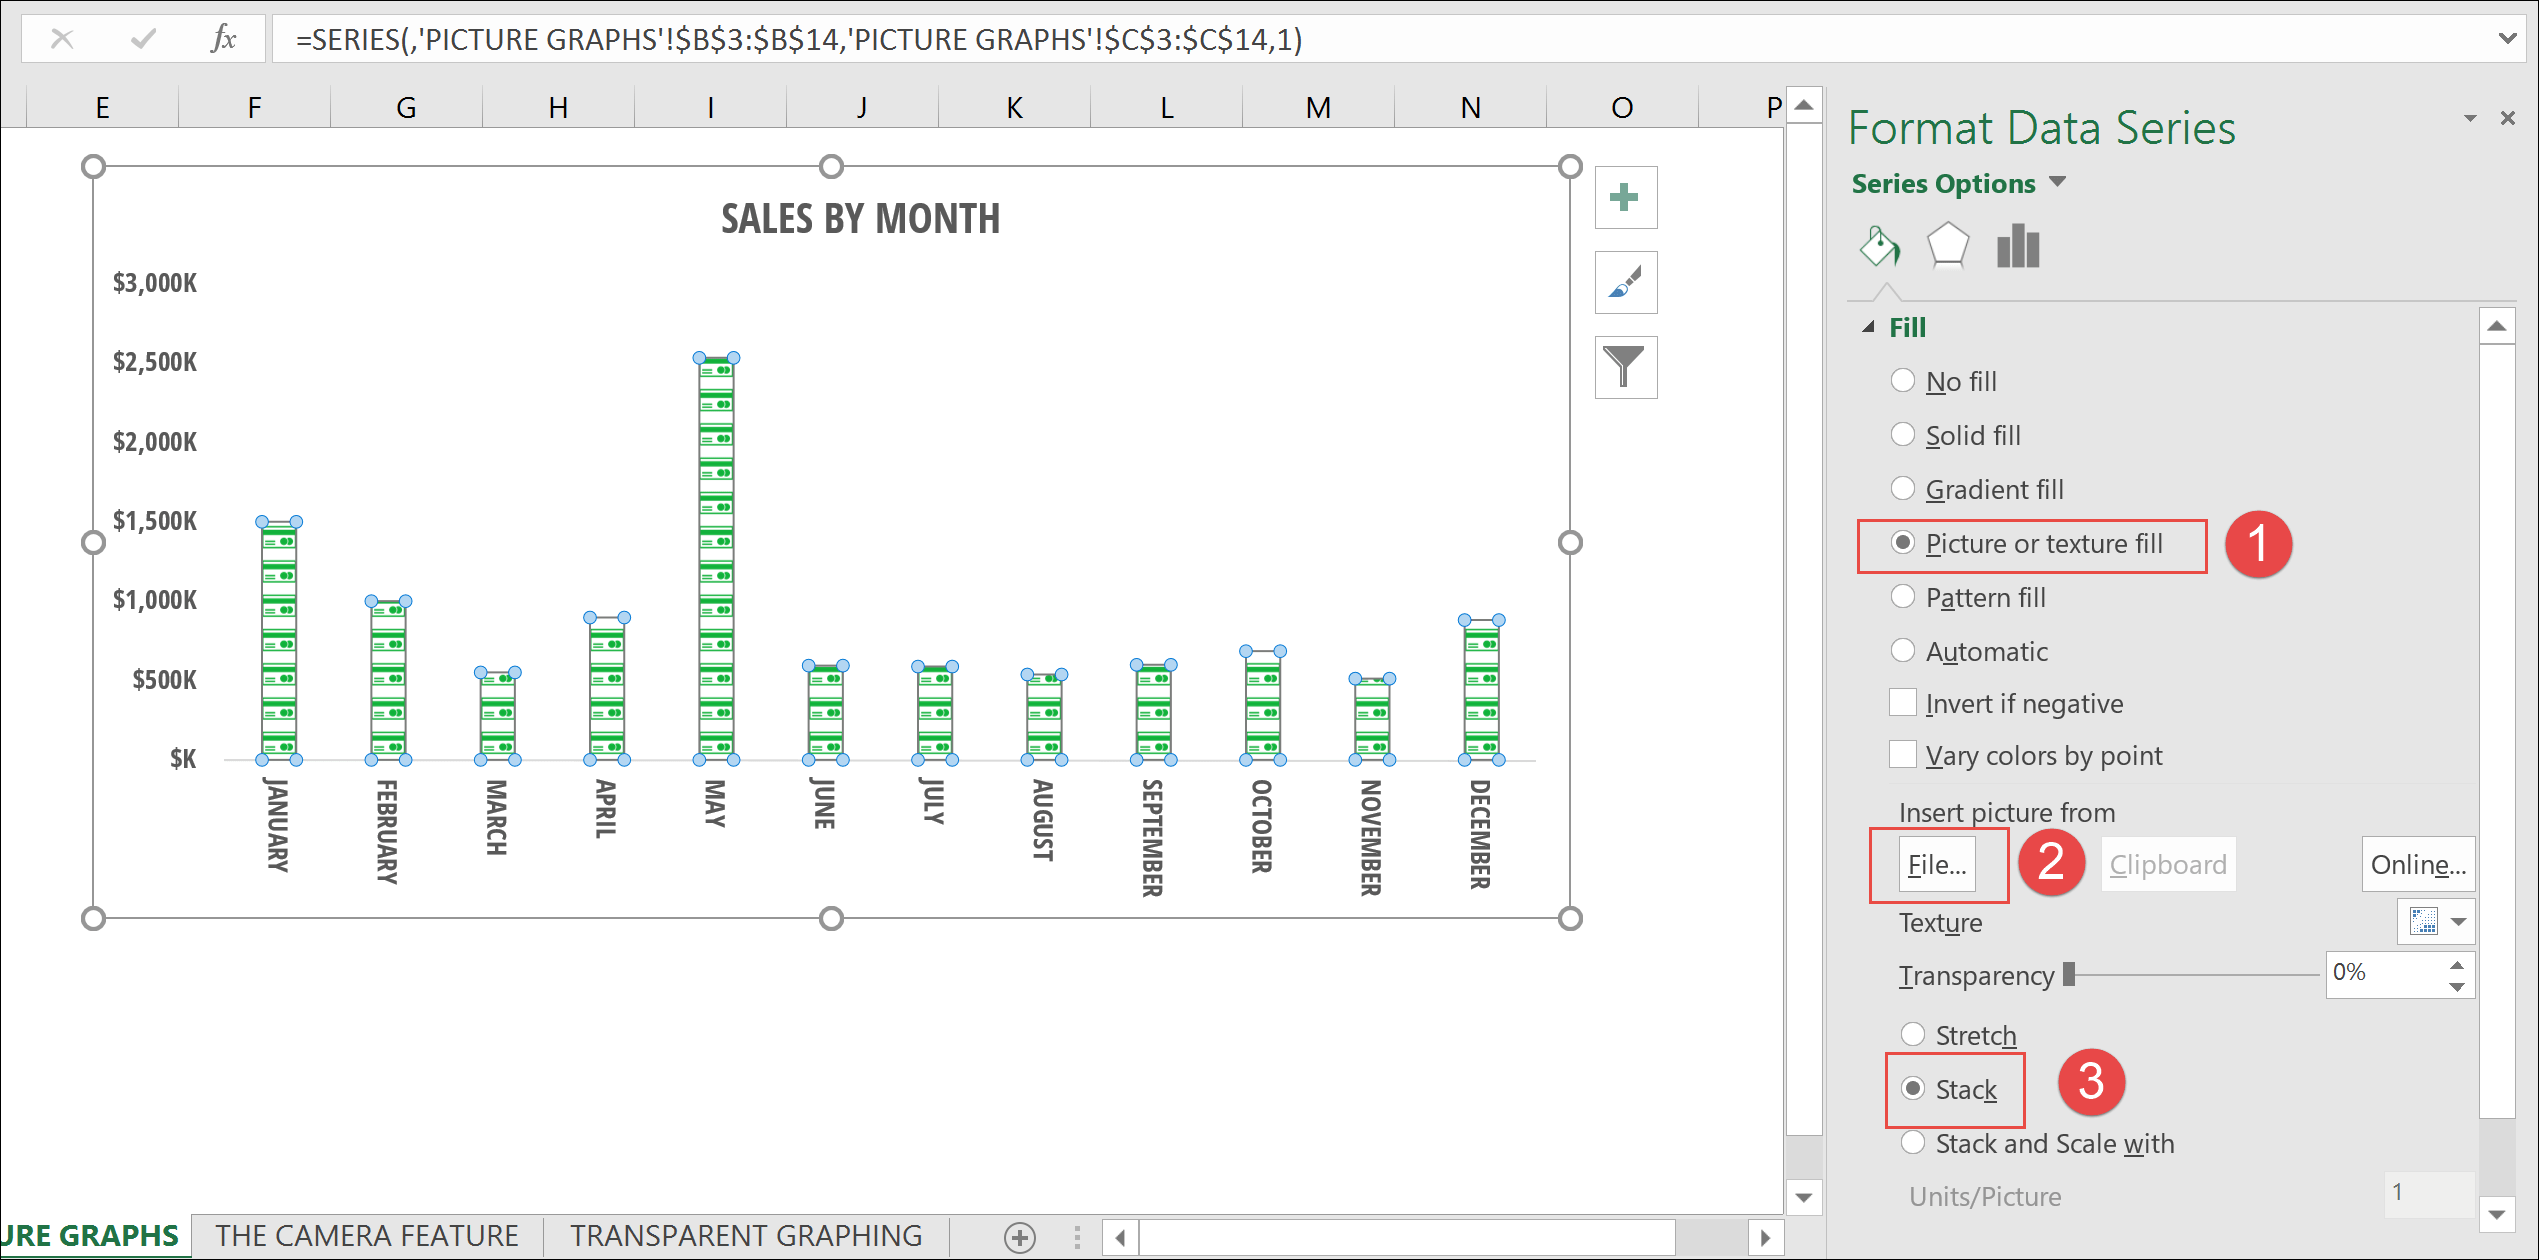 how to create a stacked bar chart in excel 2016